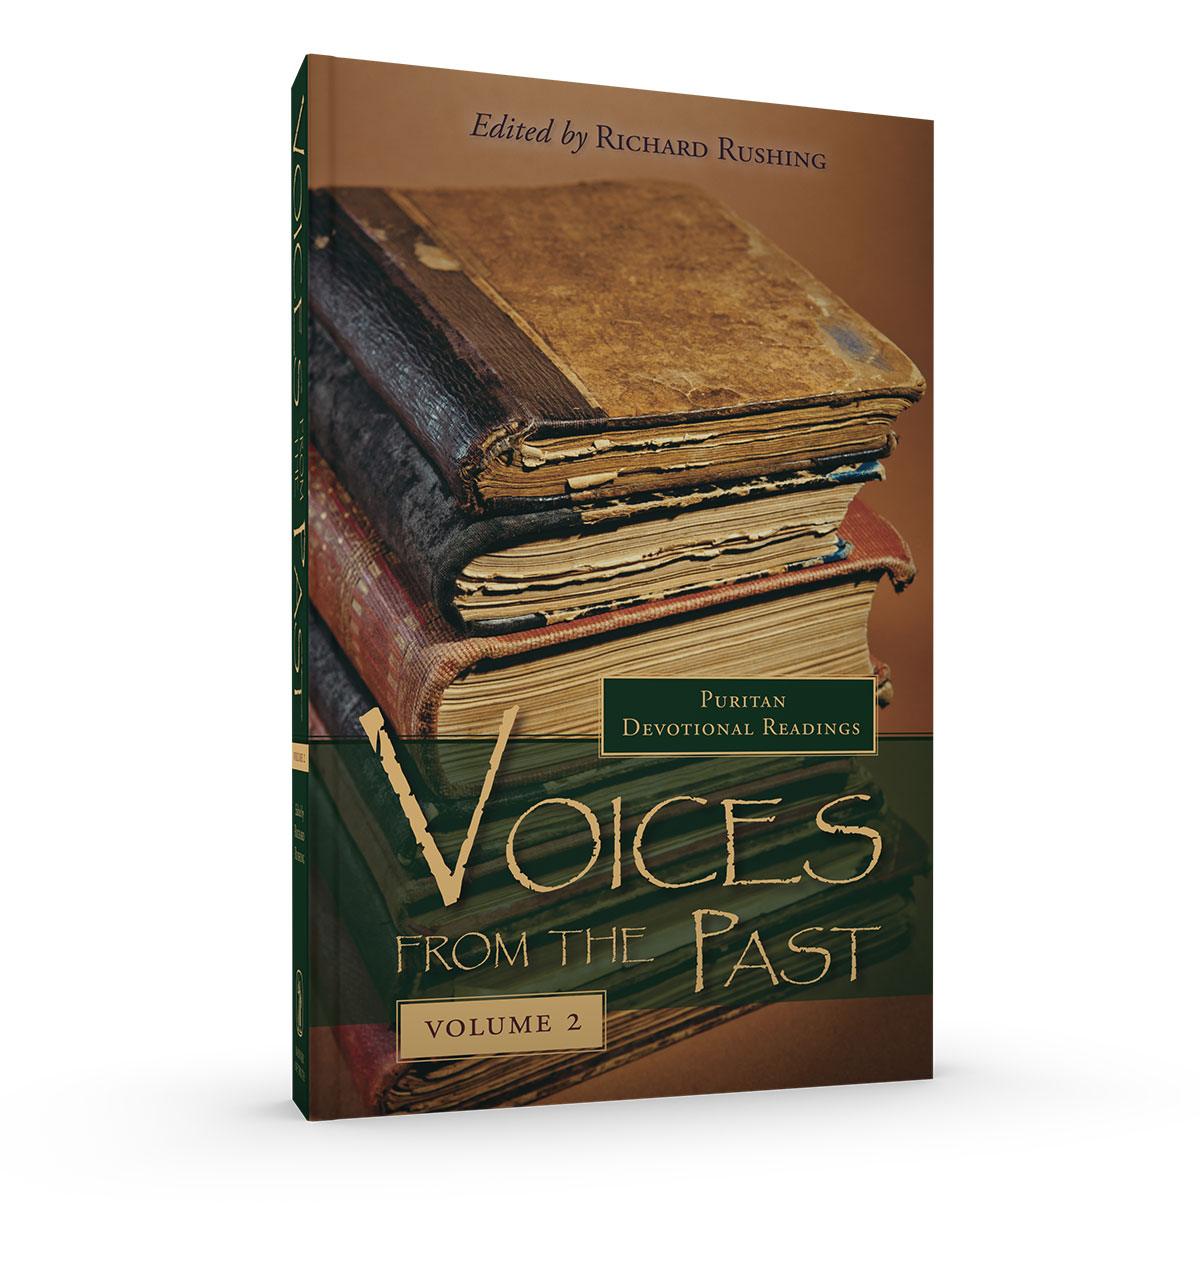 Voices from the Past, Volume 2